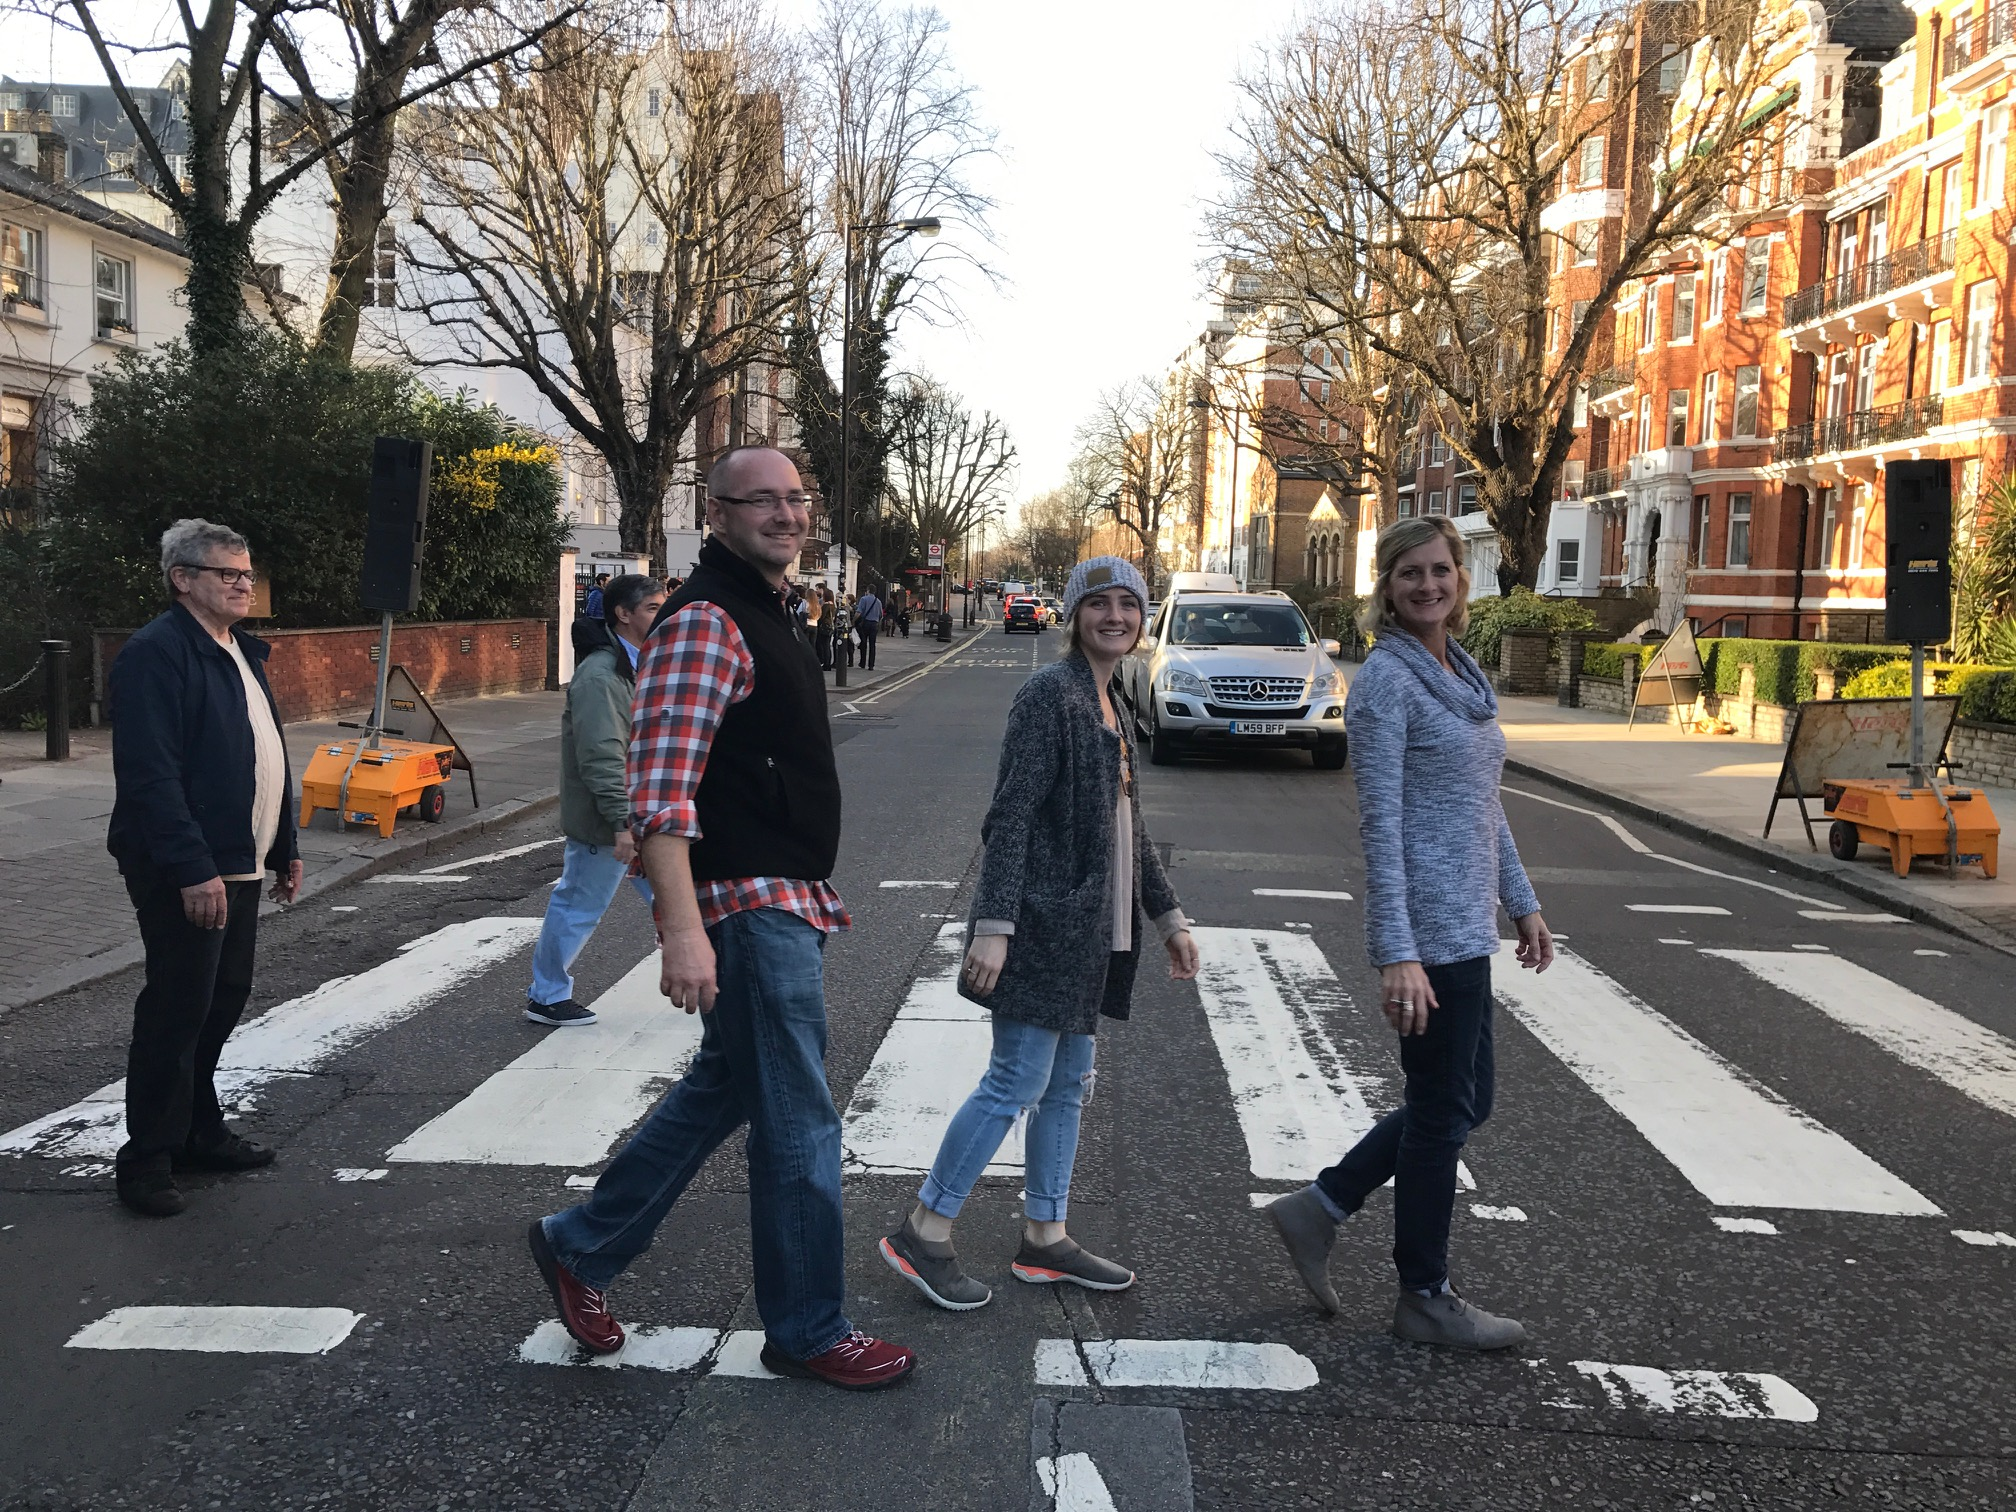 The Beatles Were Here!